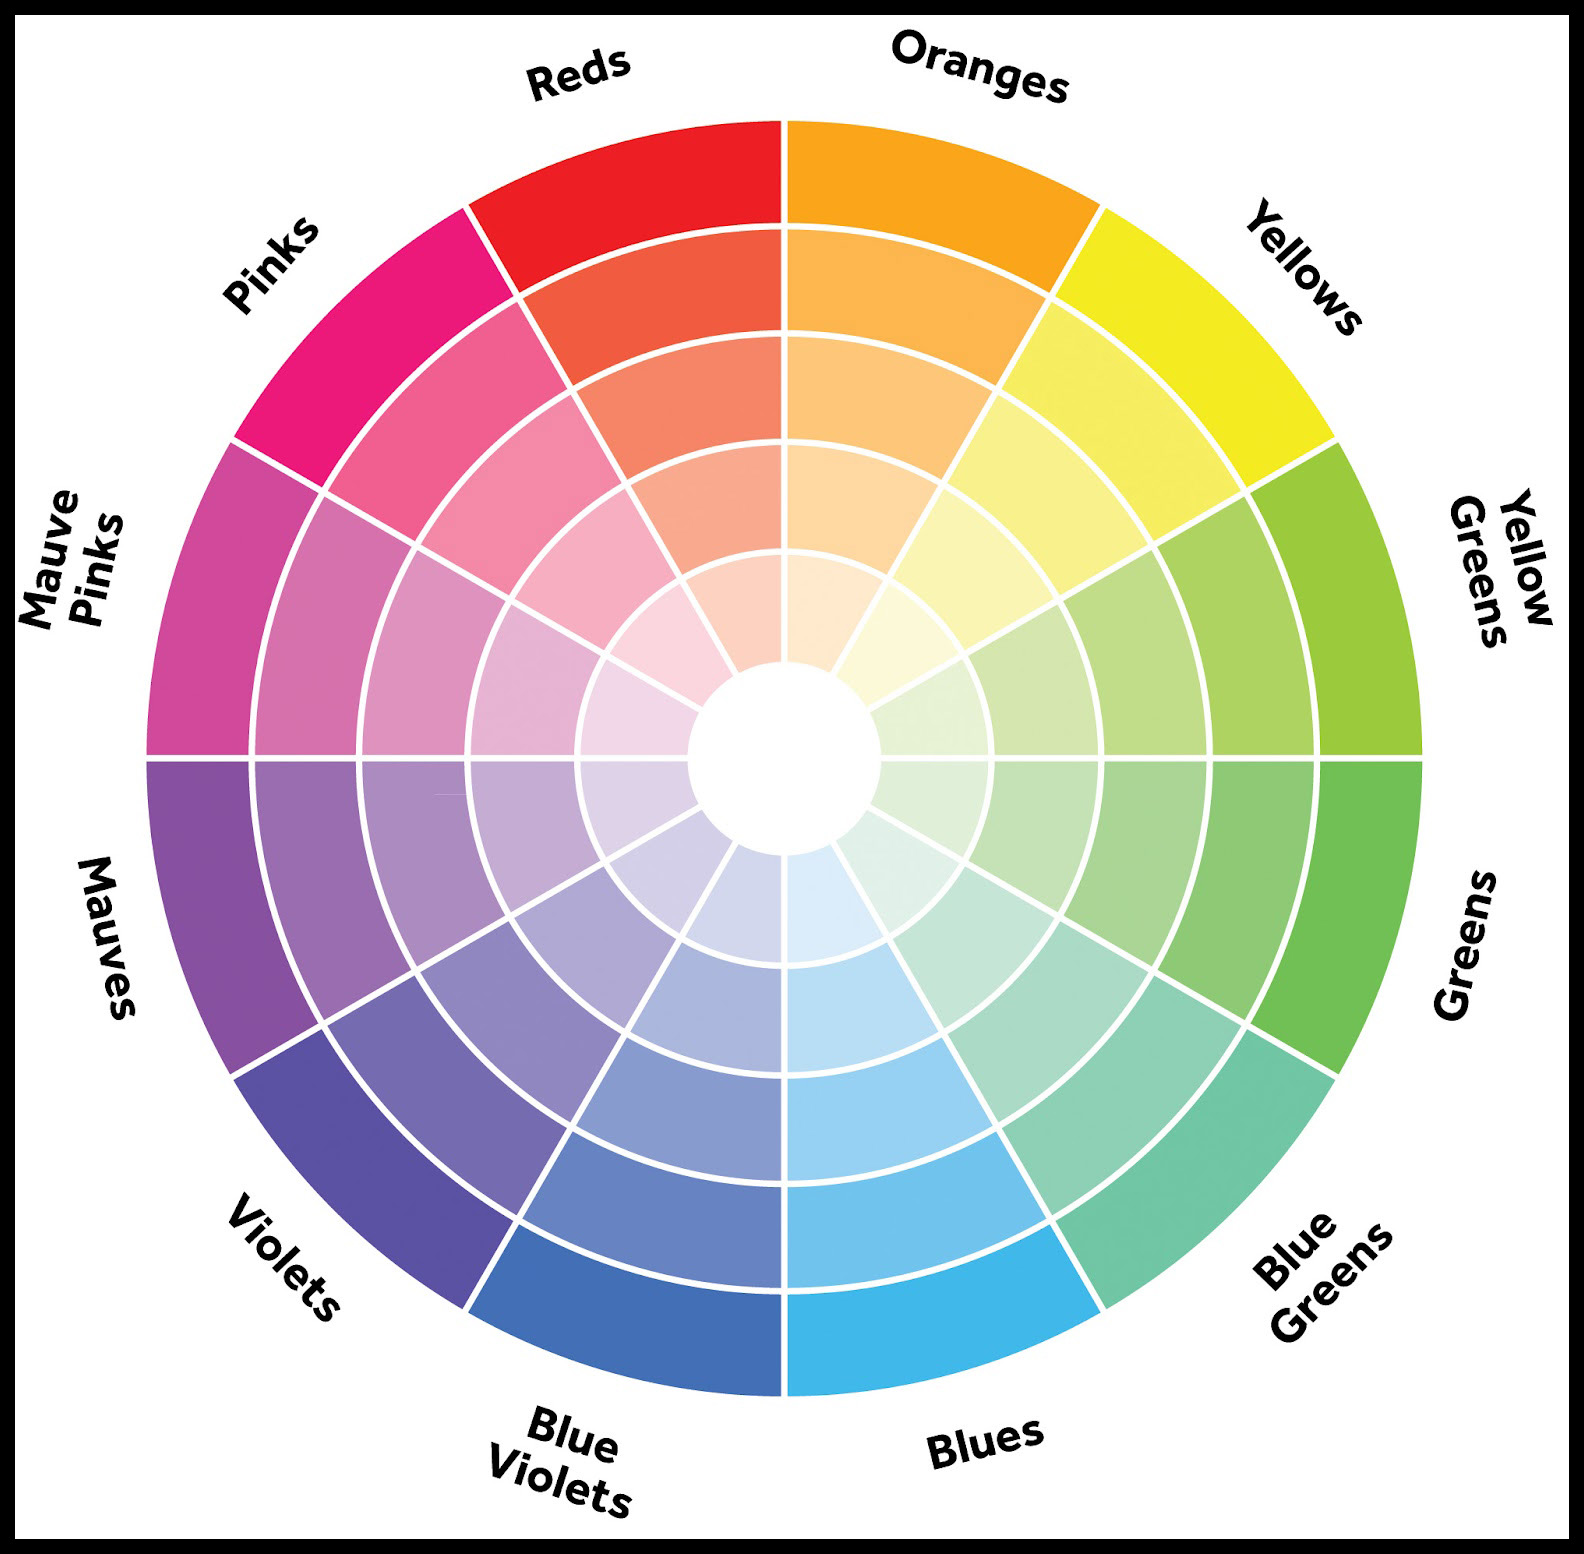 Colors Across From Each Other On The Color Wheel Called Complementary Often Pair Well Together So Do Right Next To Analagous